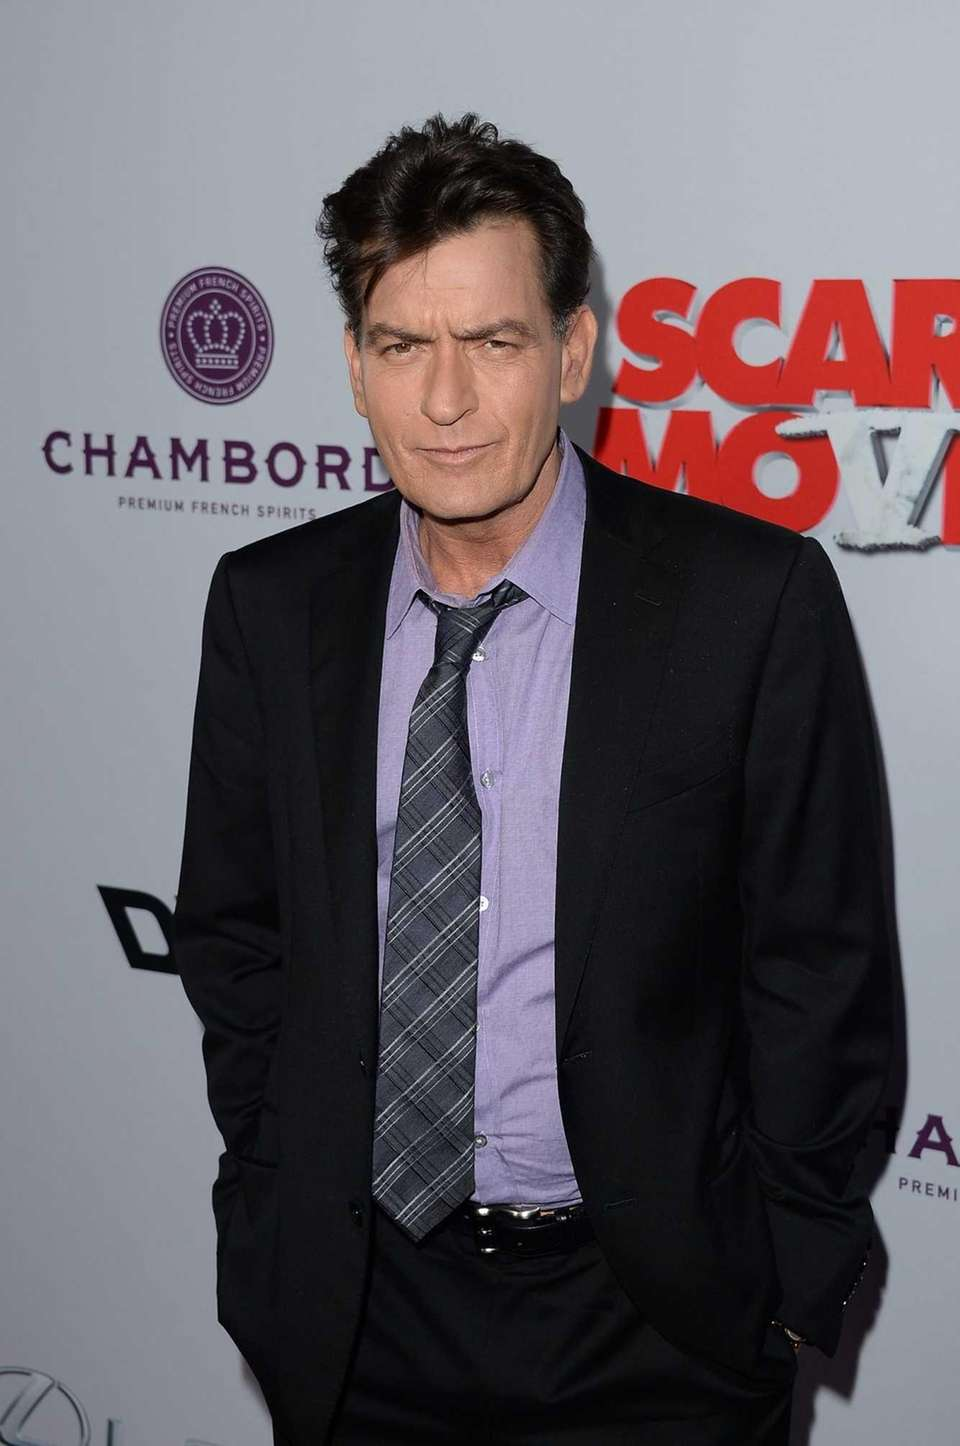 Charlie Sheen arrives at the